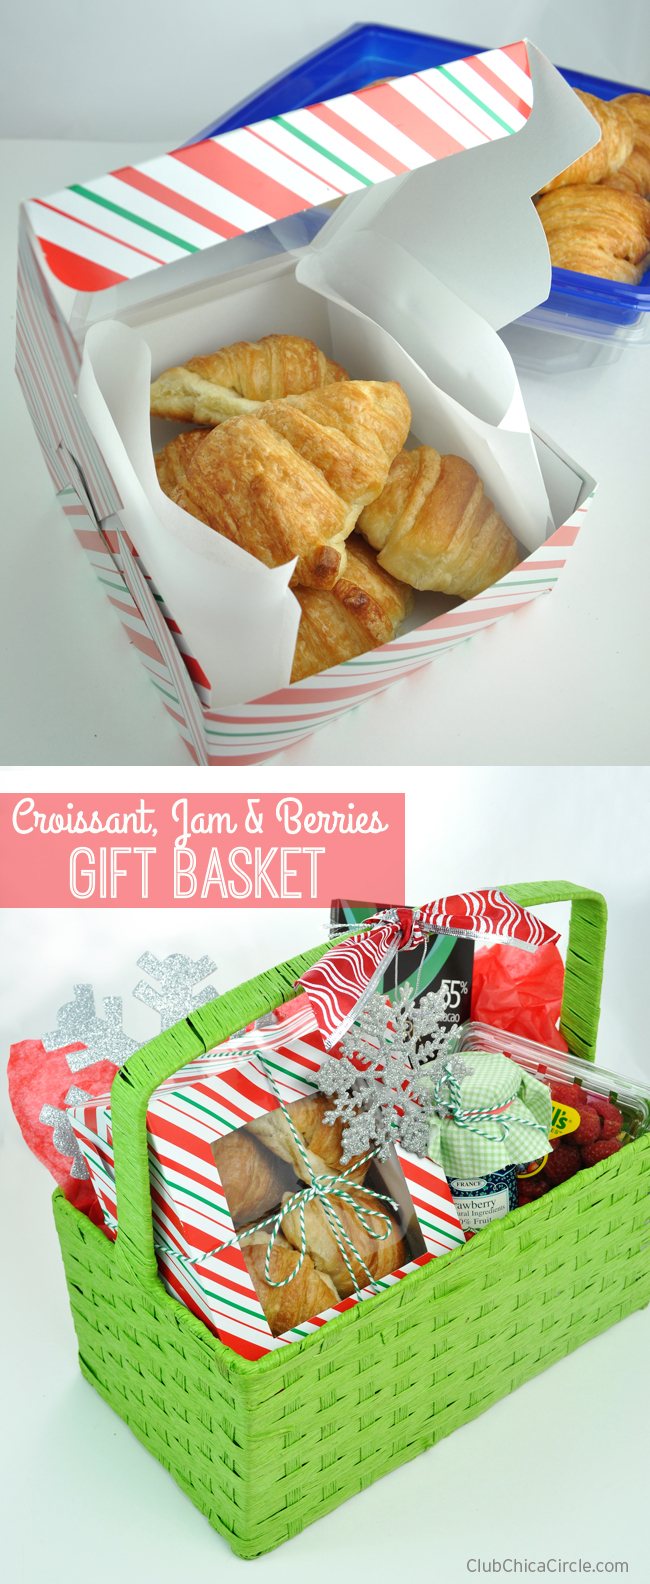 Croissant, Jam & Berries Holiday Gift Basket Idea